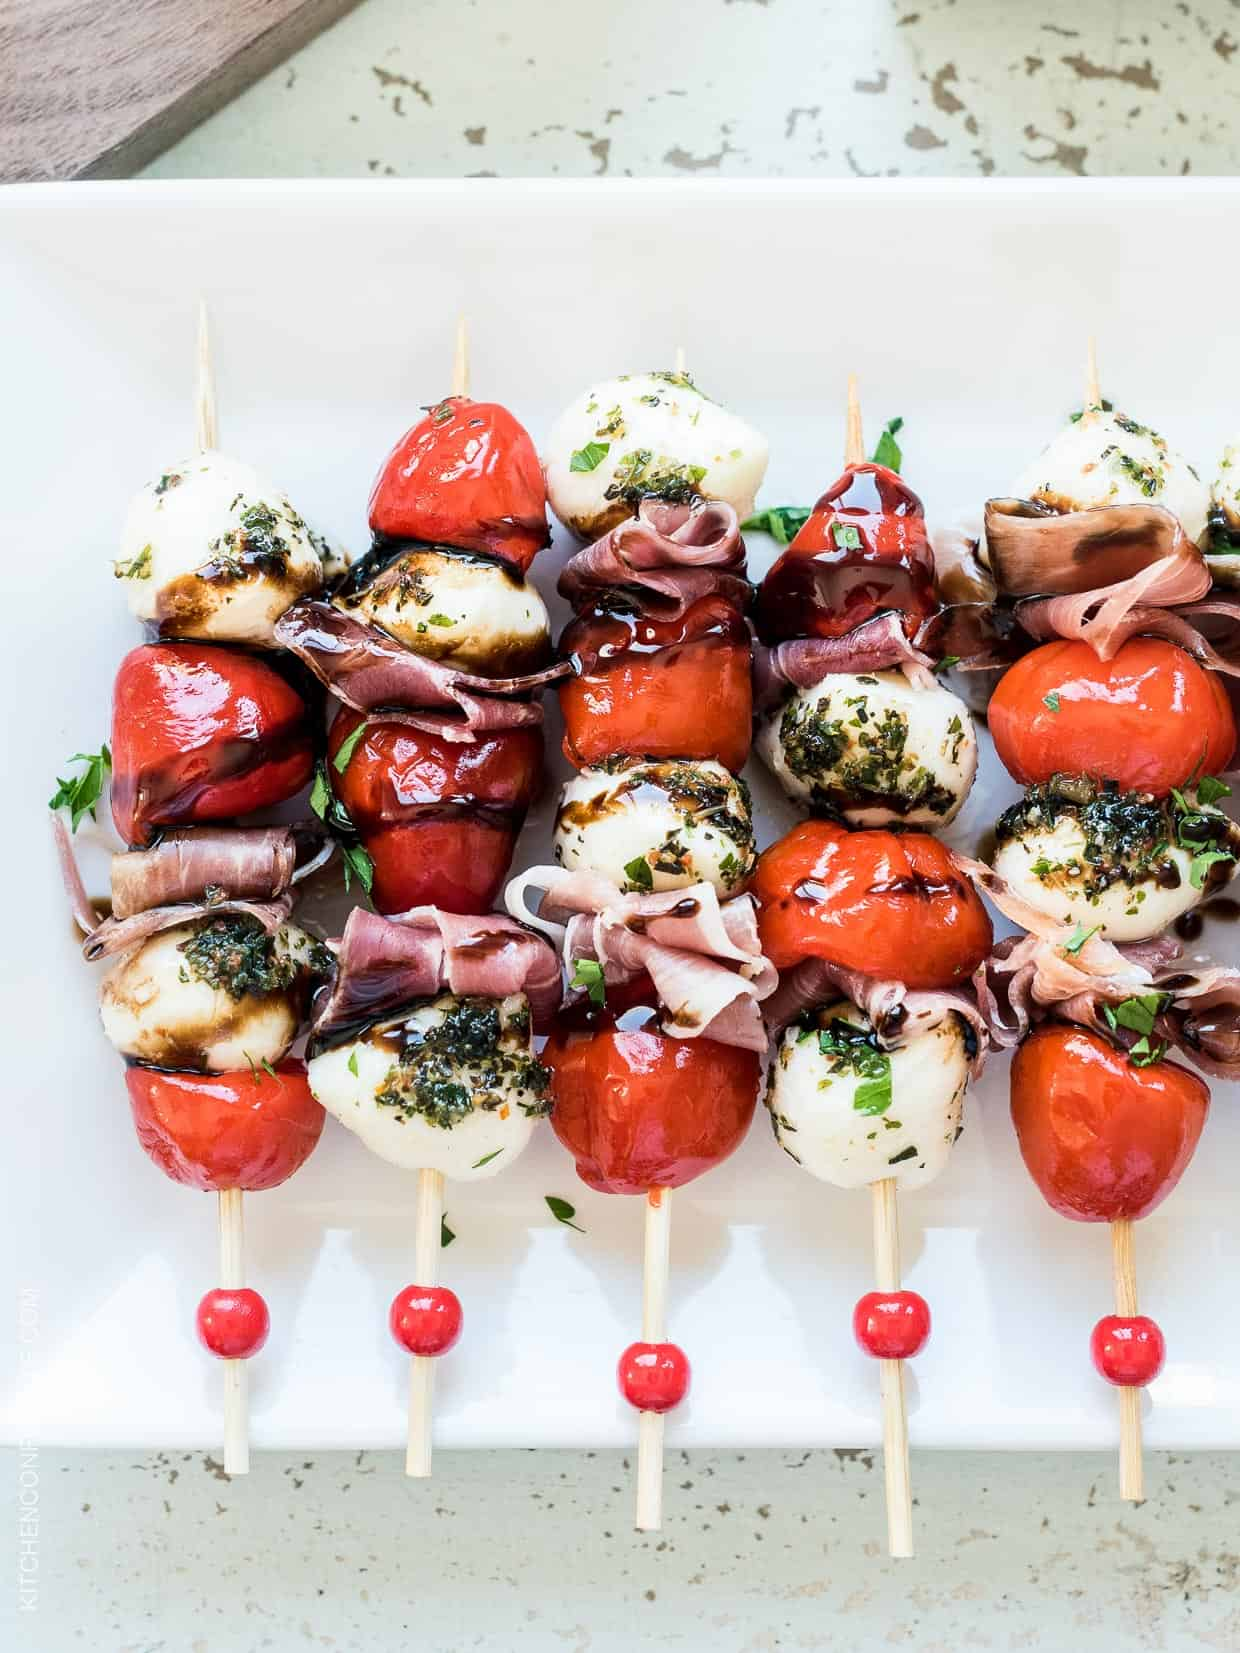 Peppadew Pepper Caprese Skewers with Balsamic Glaze are a perfect appetizer or snack for summer - you'll love this sweet and spicy take on a caprese salad!